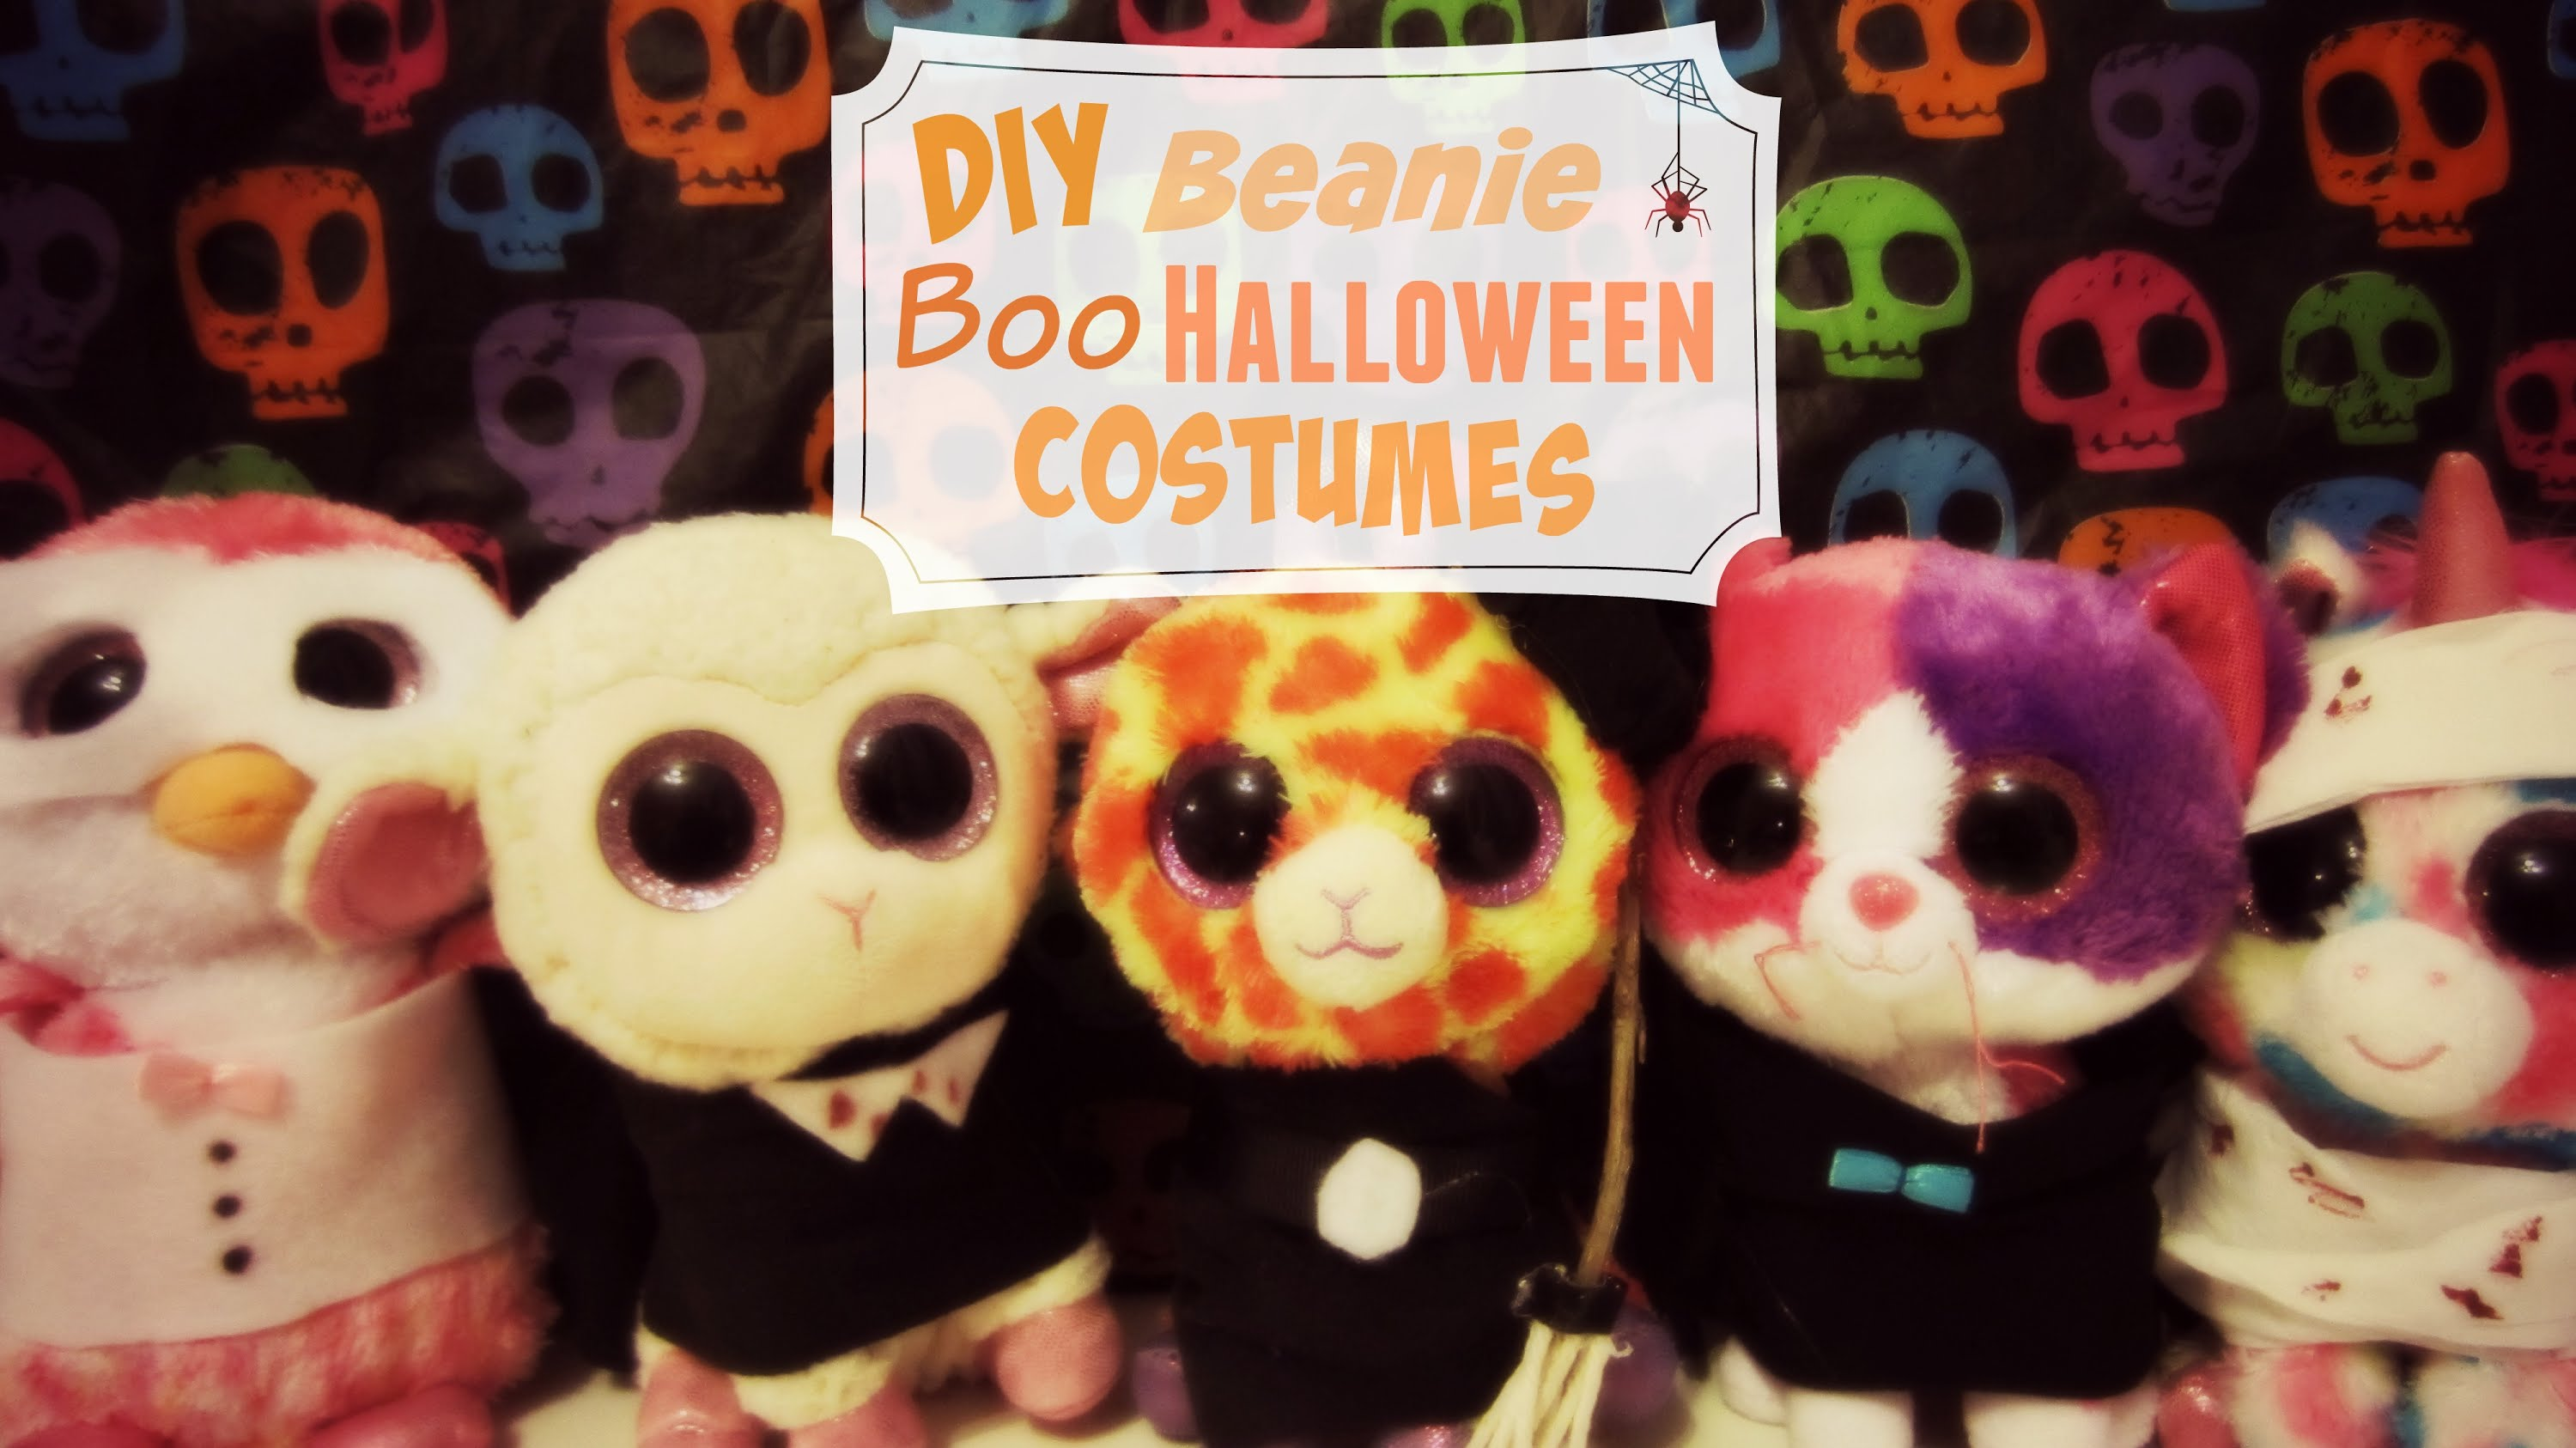 DIY Halloween Costumes For Beanie Boos! 28b5467f8696